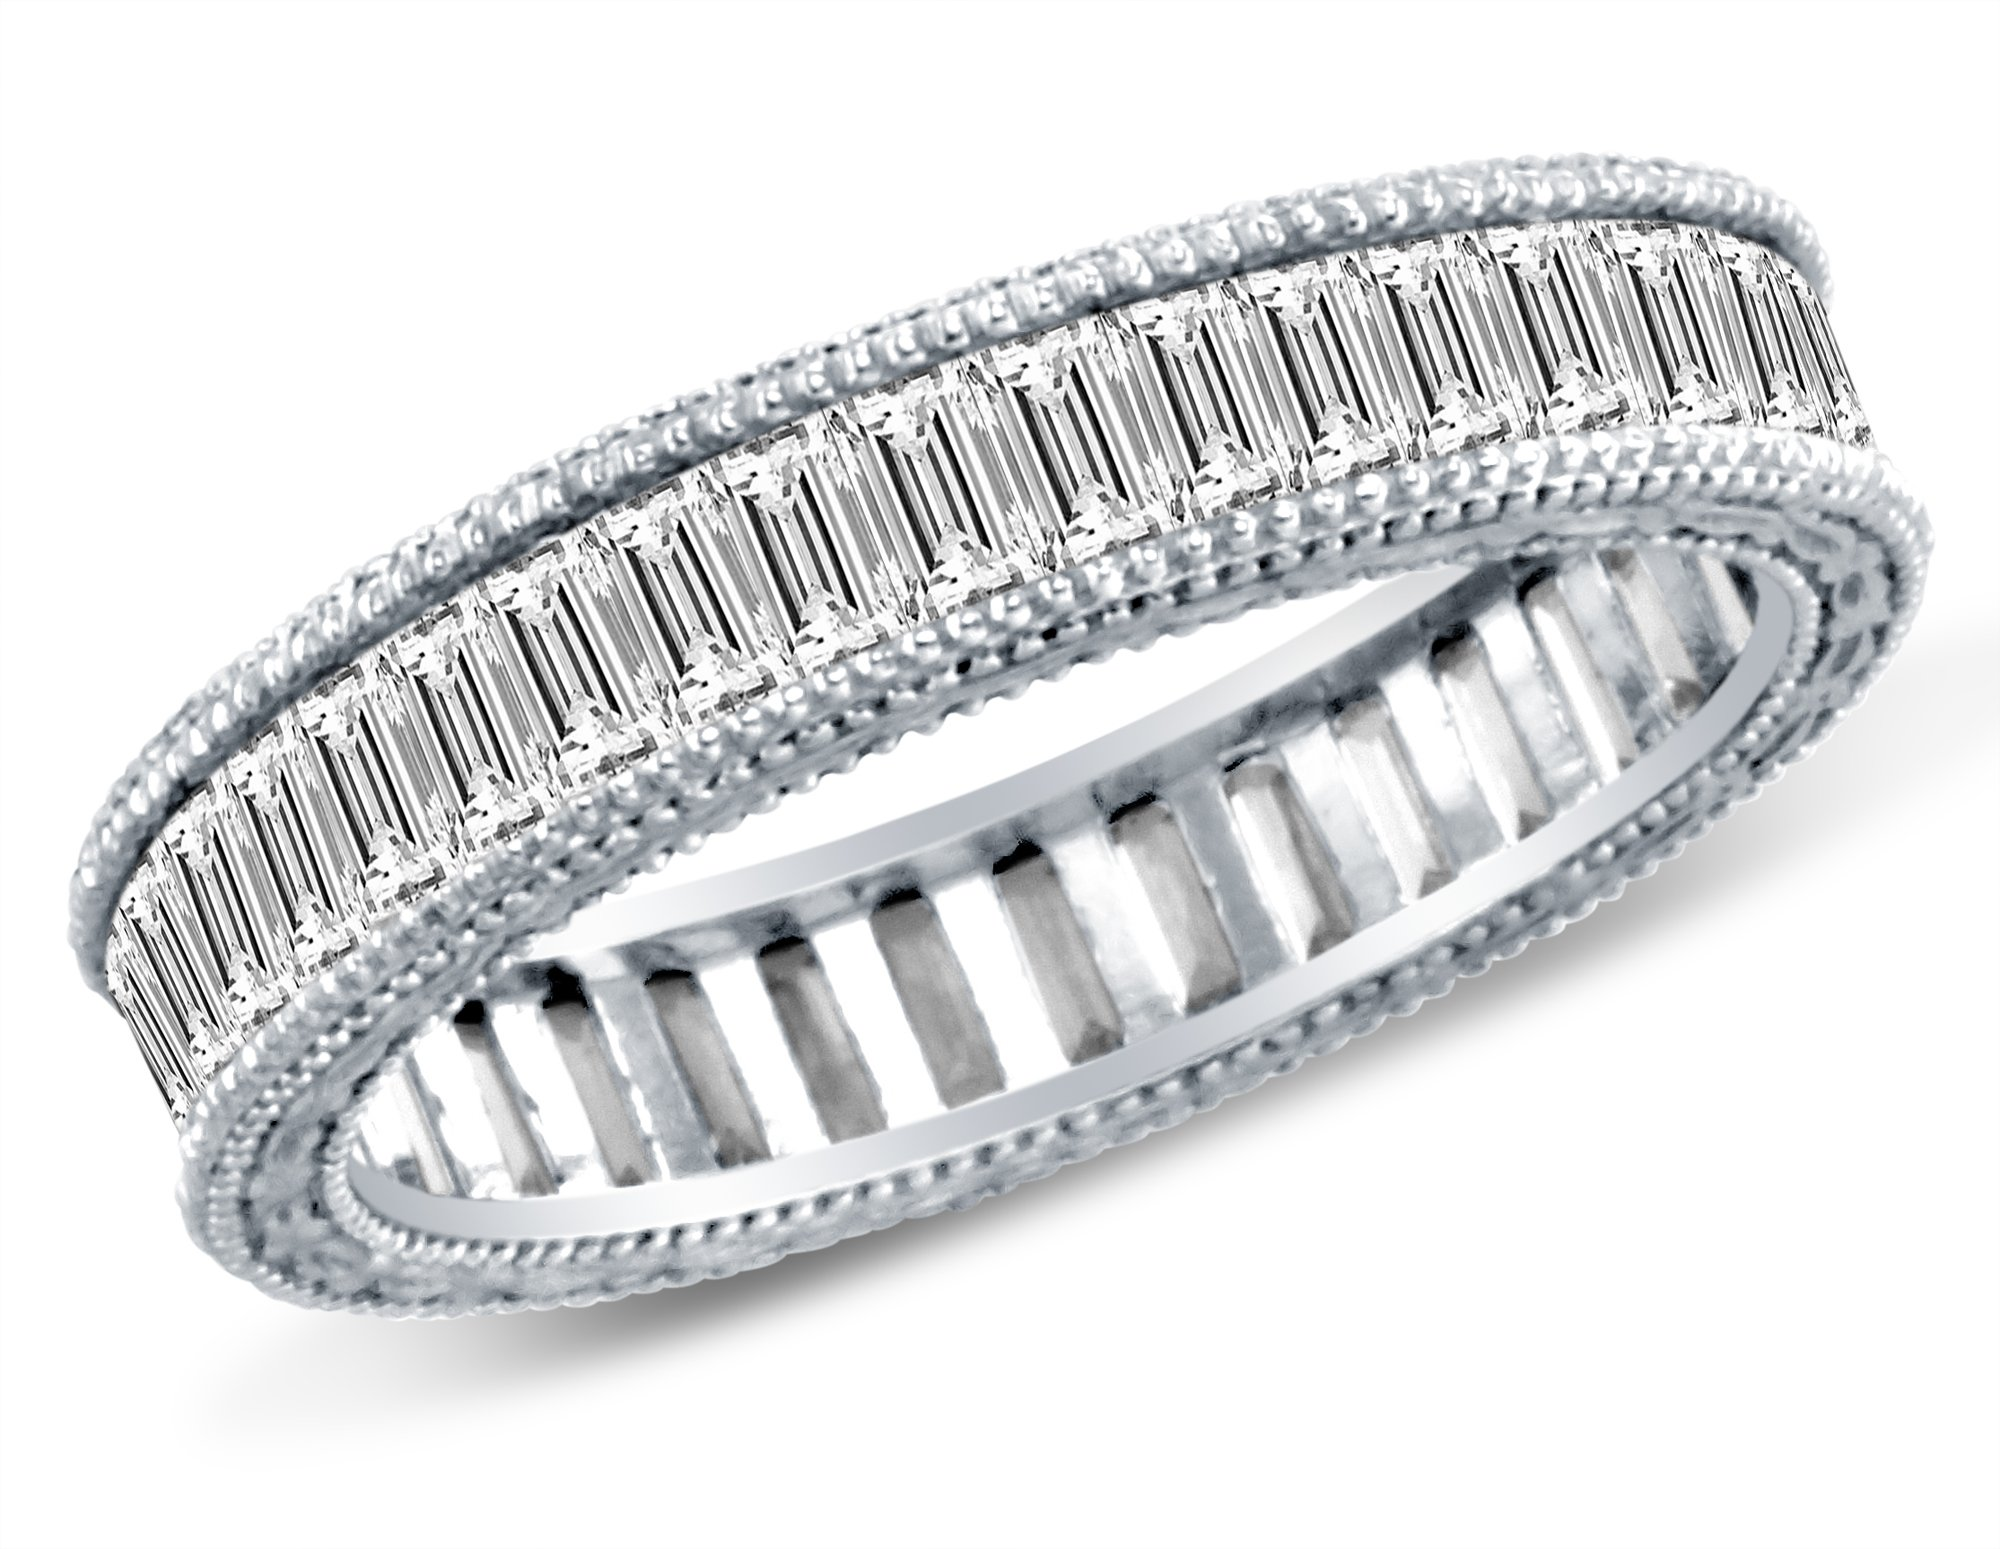 Size 8 - 4mm Solid 14K White Gold Channel Invisible Set Baguette Highest Quality CZ Cubic Zirconia Eternity Anniversary or Wedding Ring Band (Available in sizes 5 , 6 , 7 & 8)